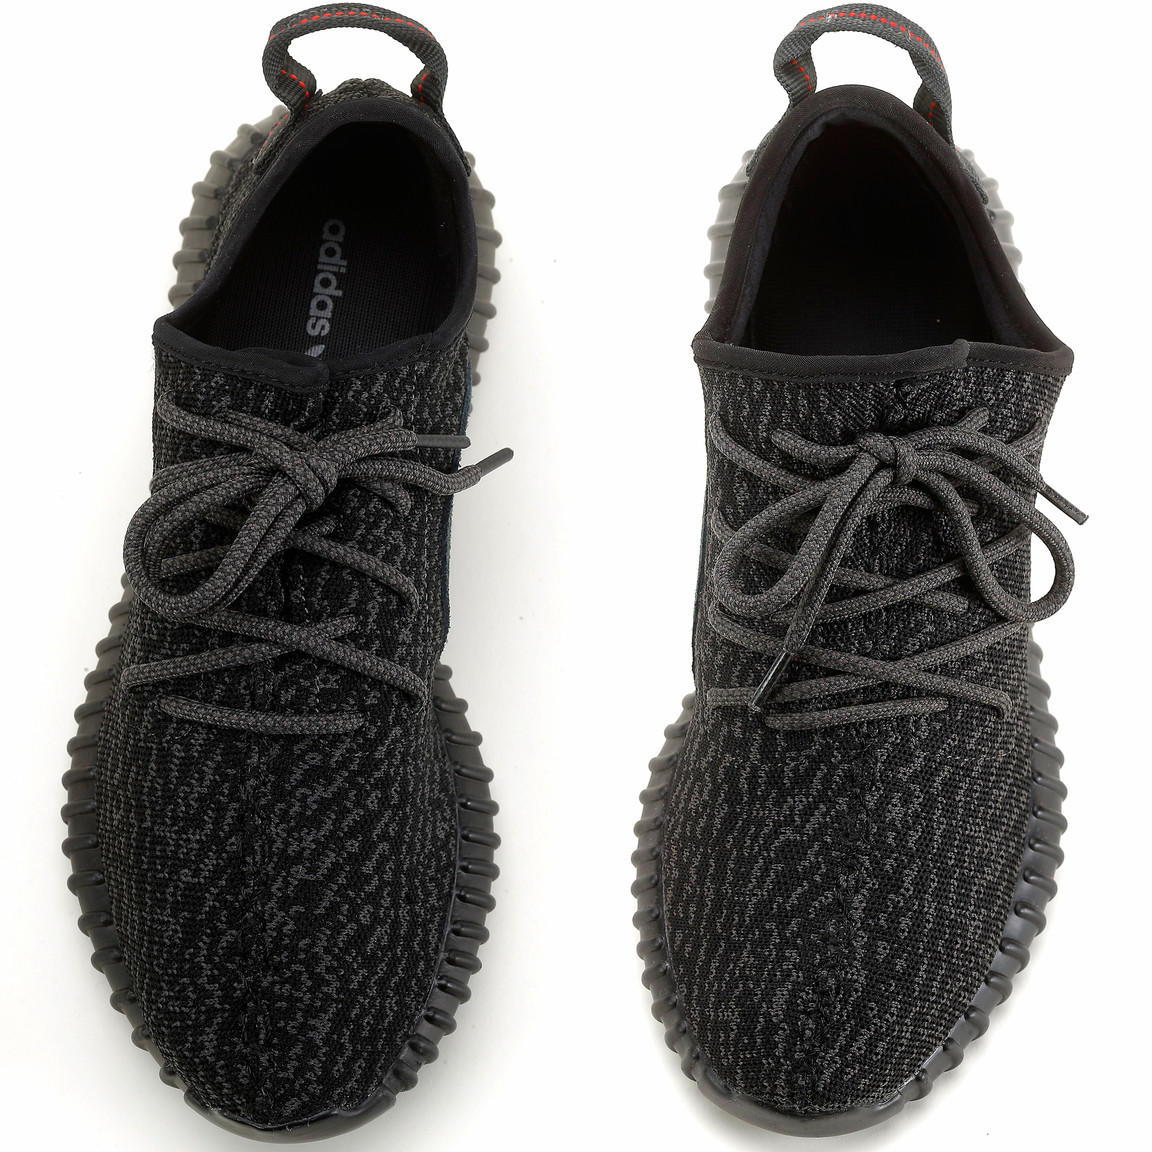 678380ff22b80 Counterfeit Yeezys and the booming sneaker black market - Los ...